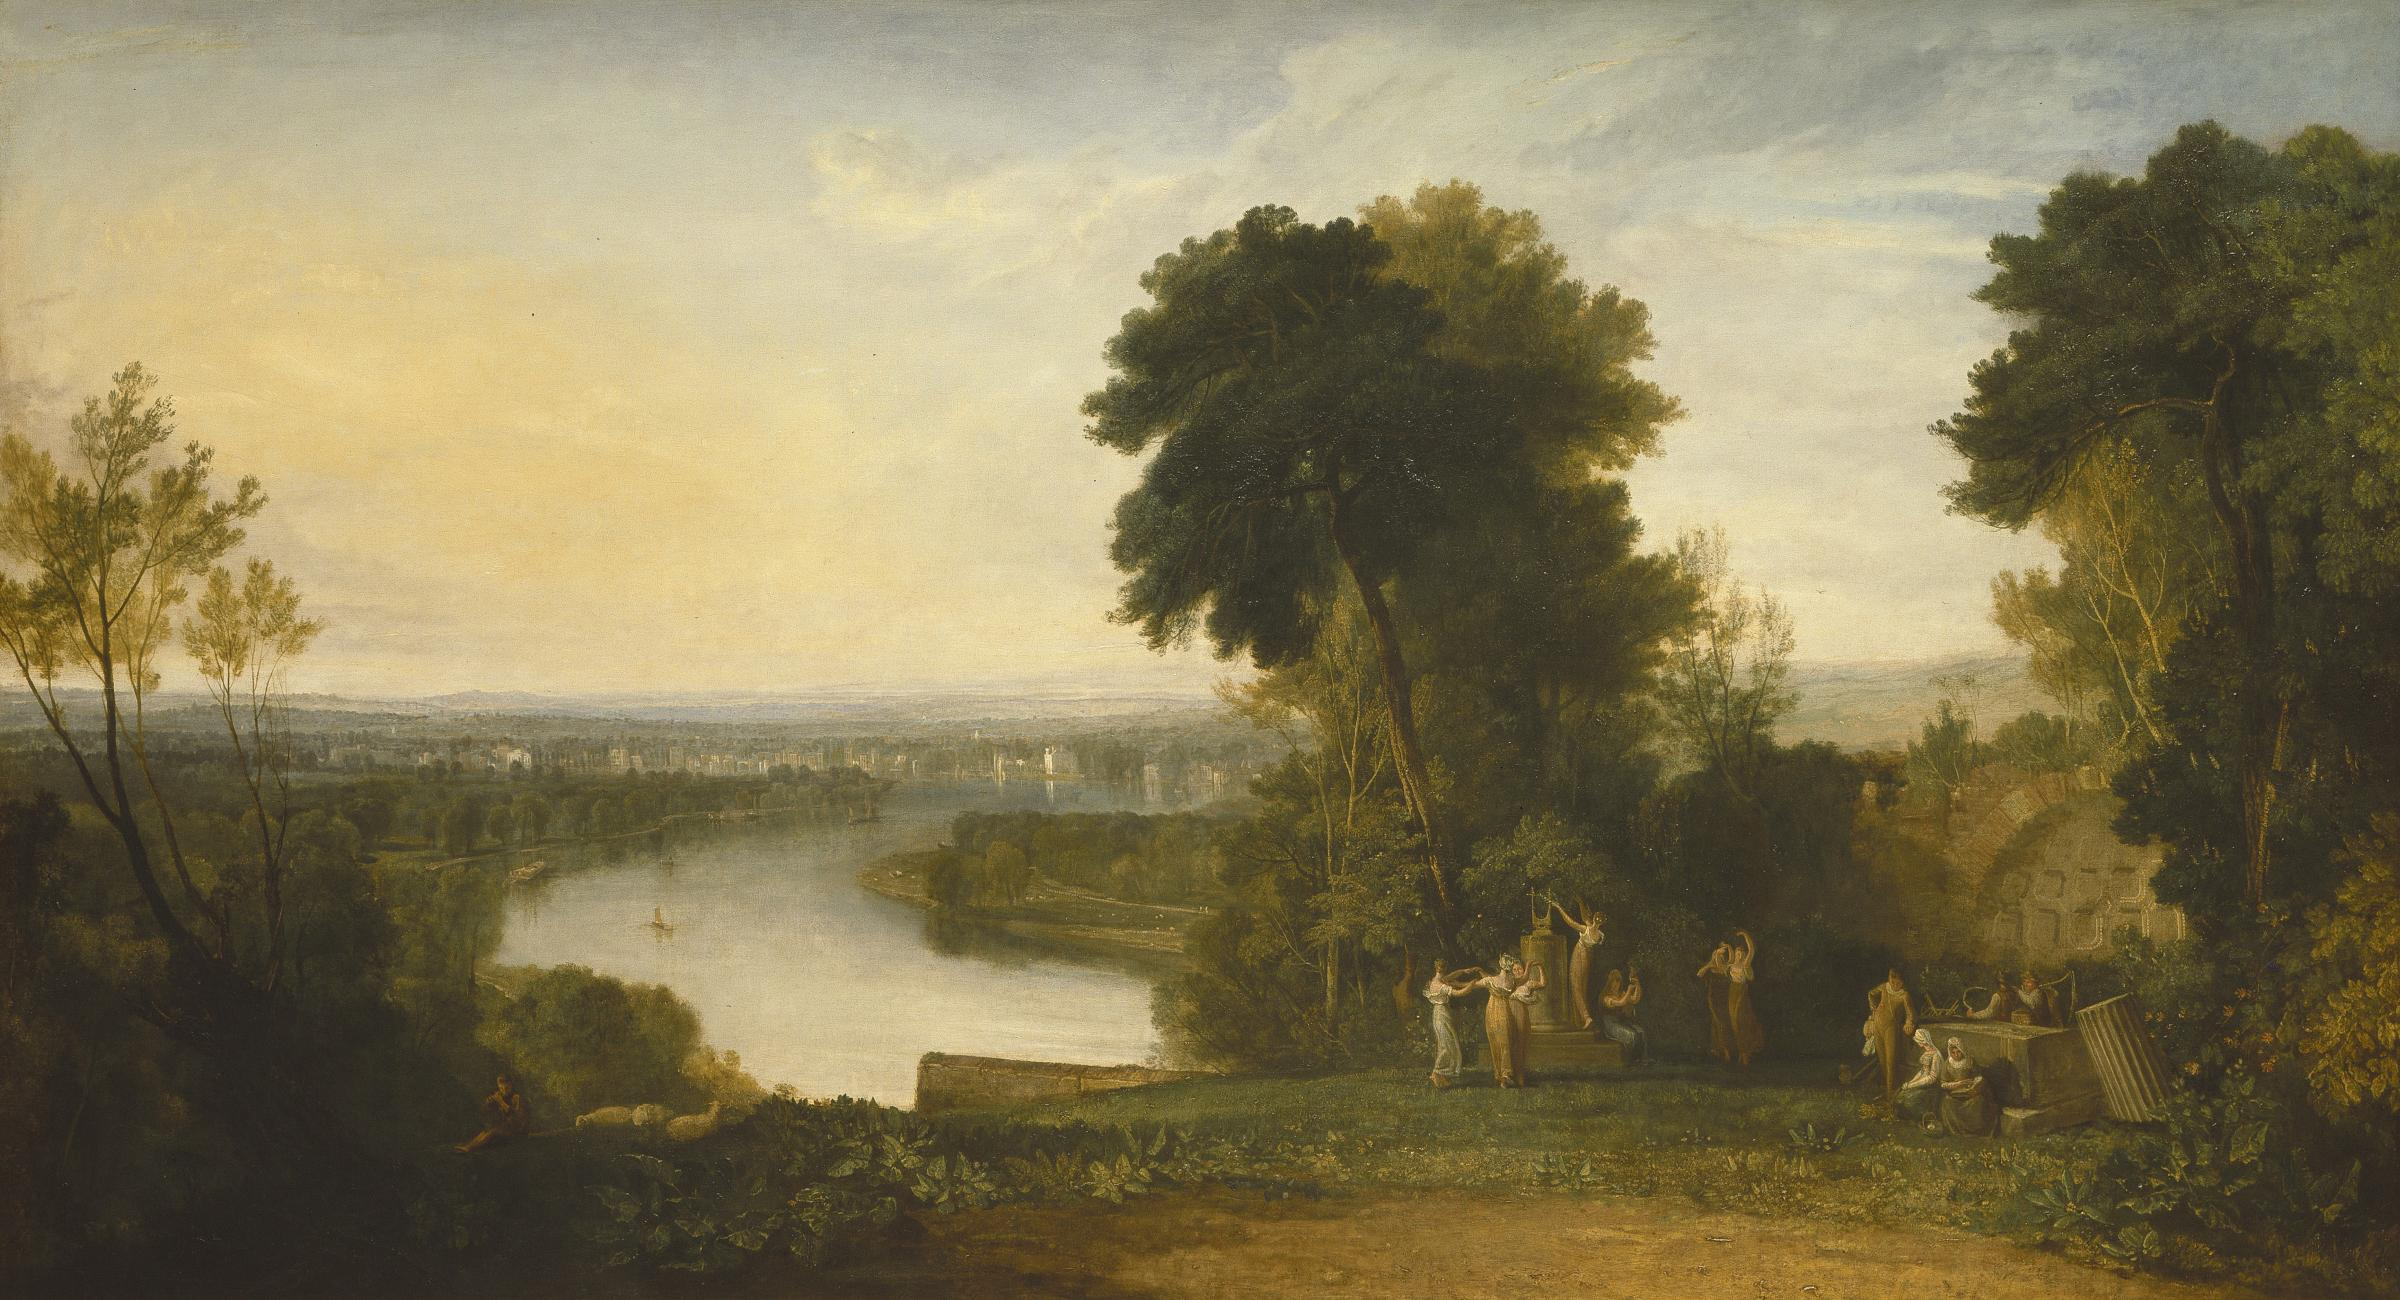 J.M.W. Turner and 'the Matchless Vale of Thames'